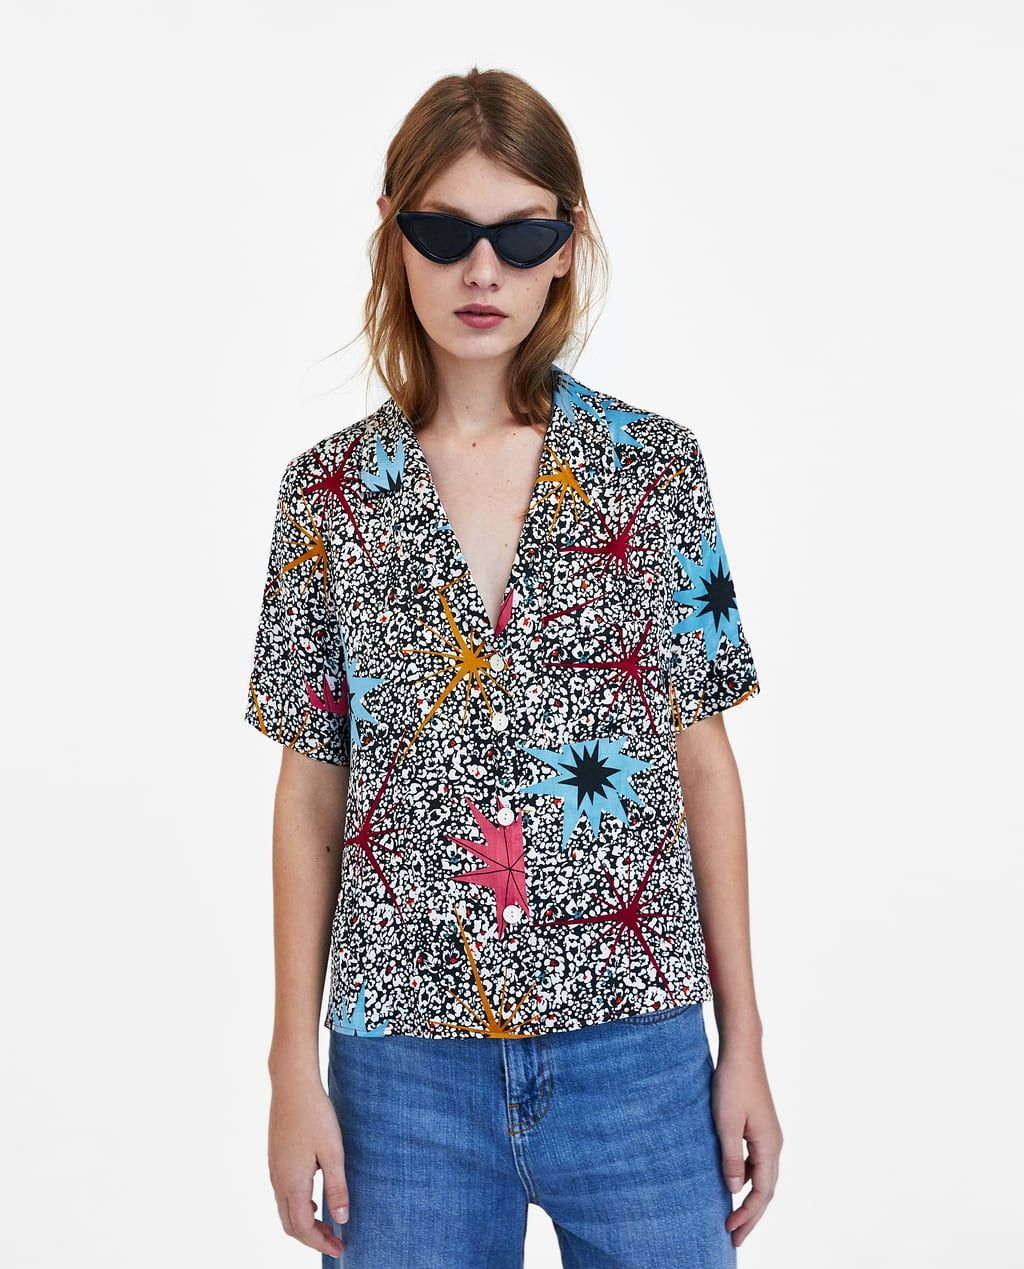 721d3a4d26549 SATIN PRINTED SHIRT-View All-SHIRTS AND TOPS-WOMAN